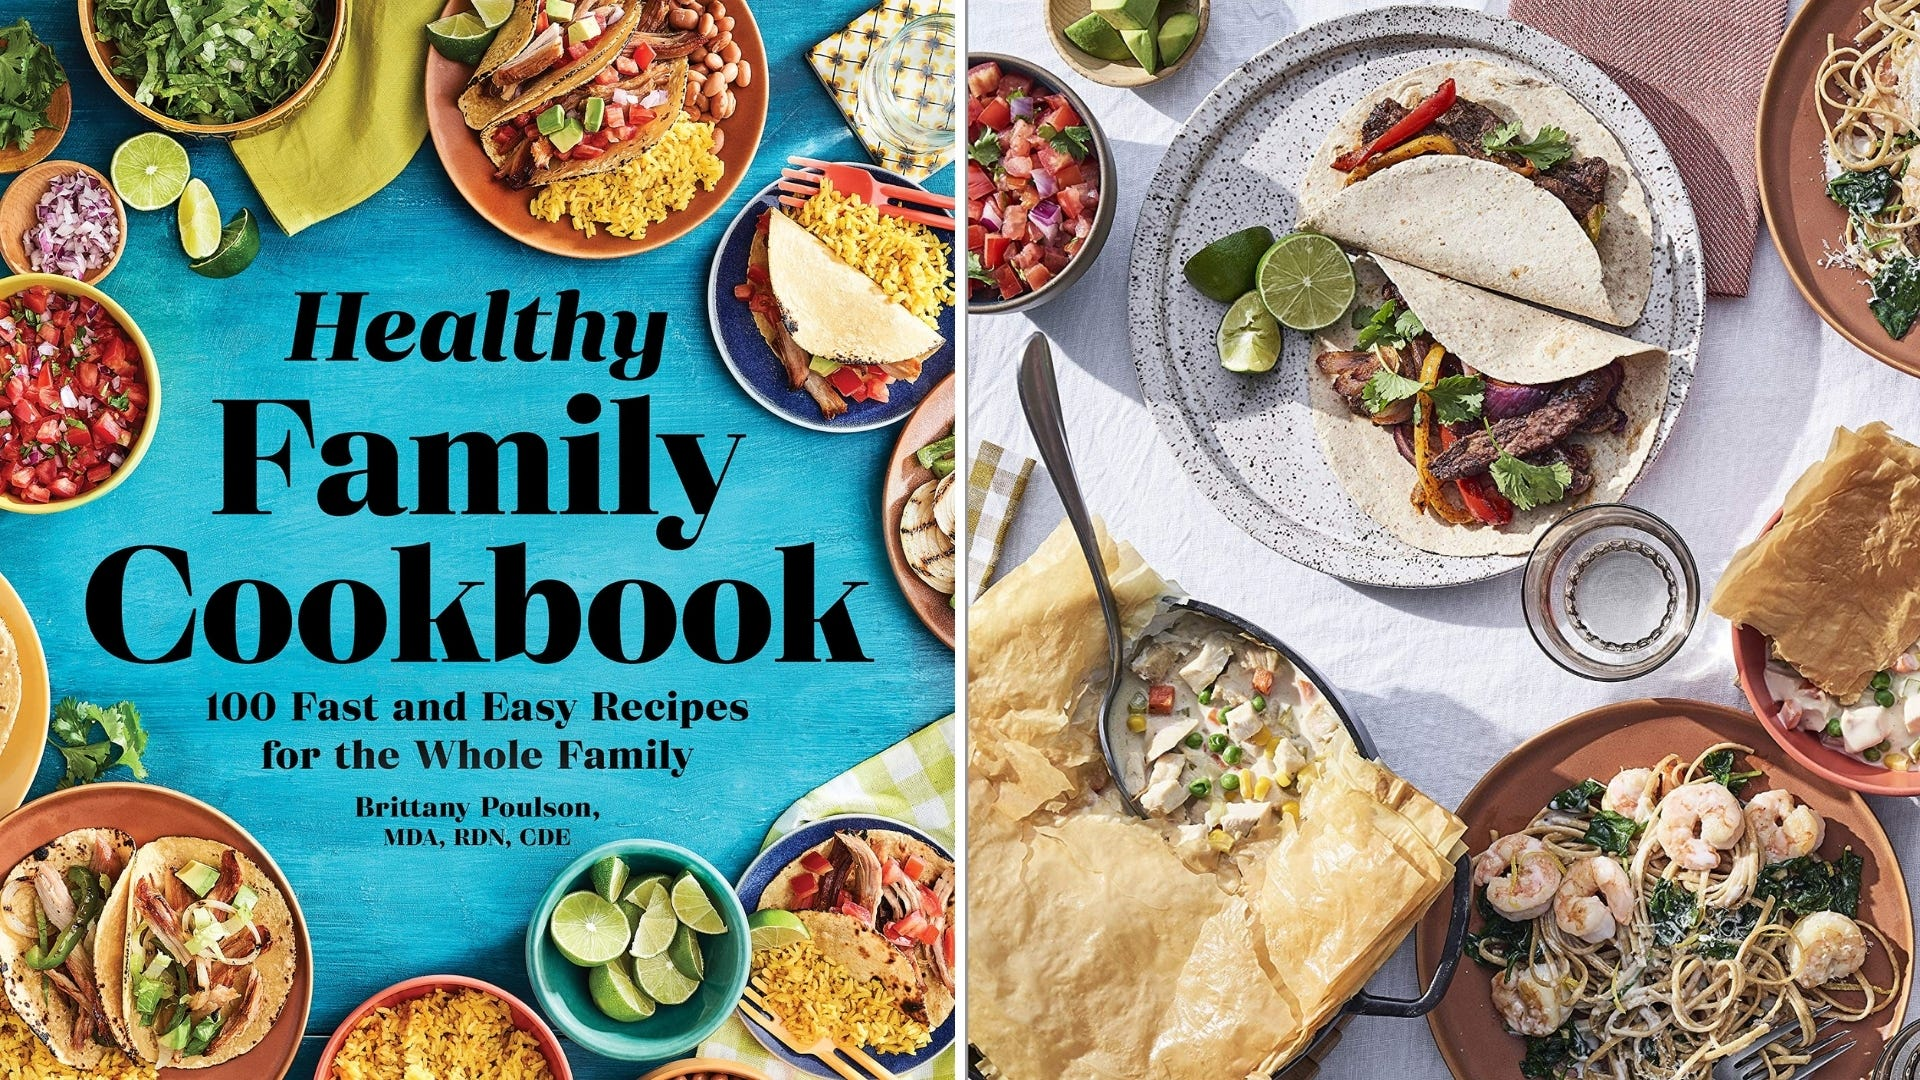 The cover of The Healthy Family Cookbook and a photo of tacos, chicken pot pie, and shrimp noodles.